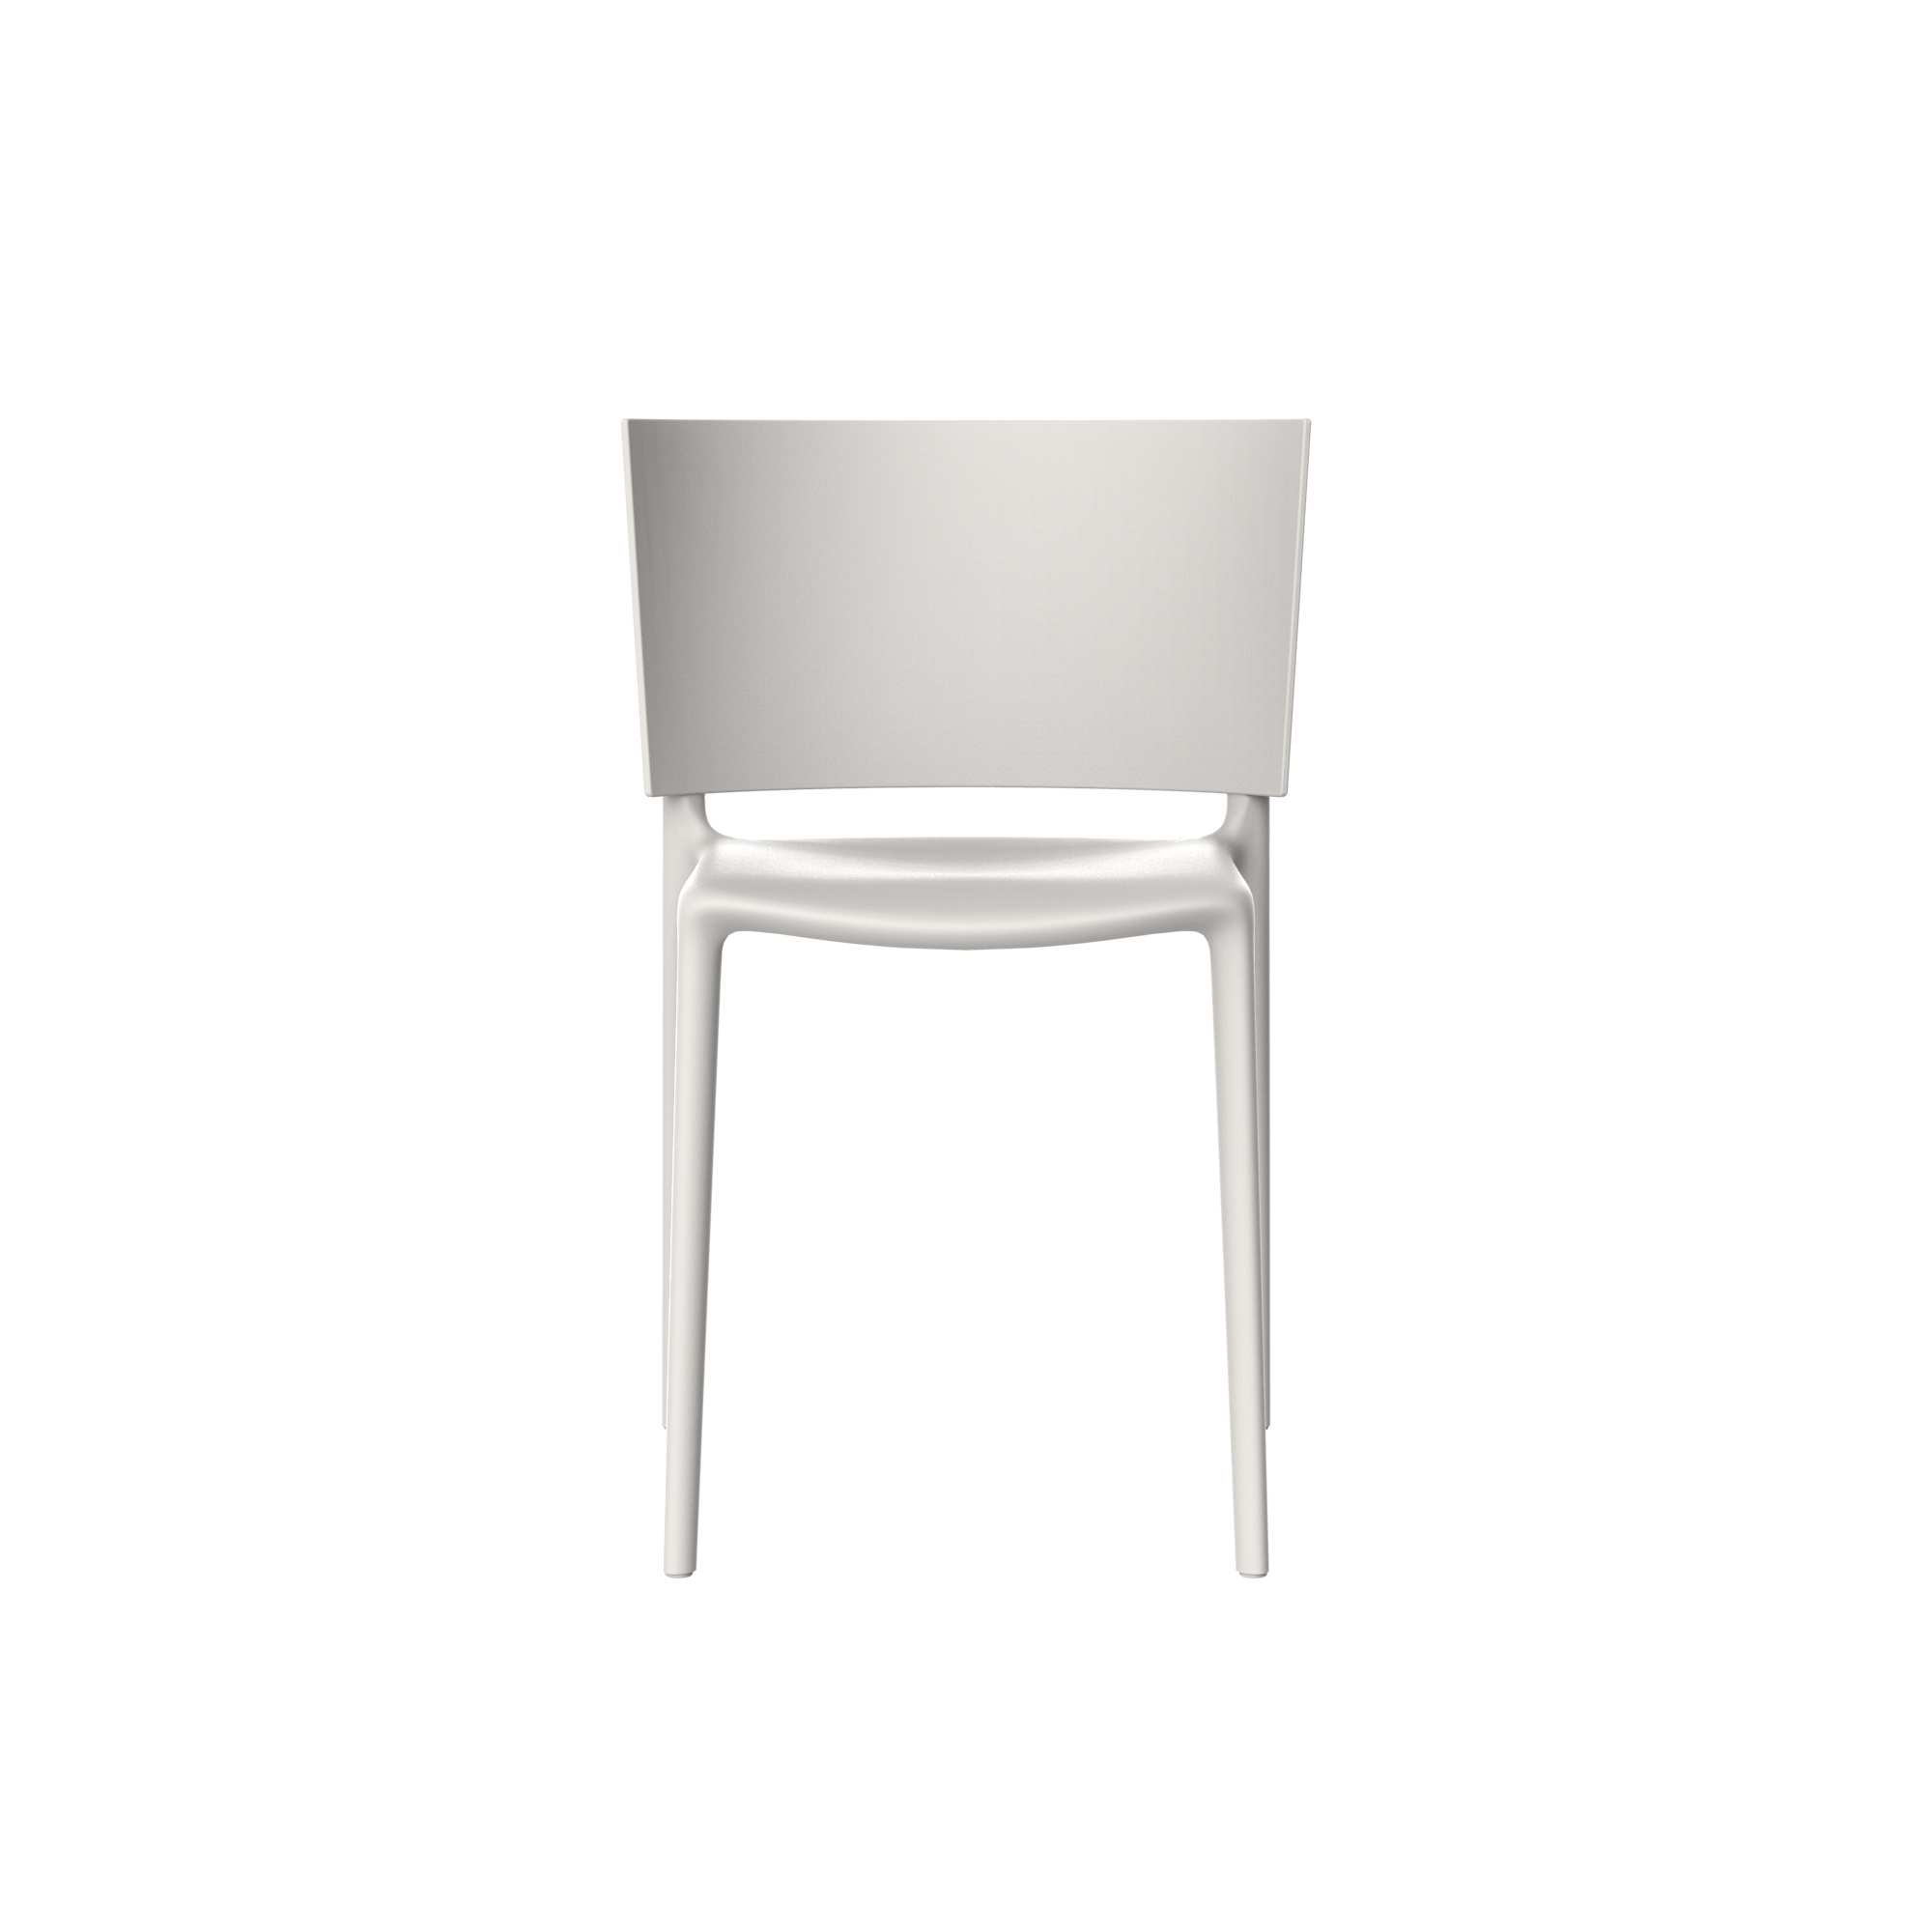 AFRICA CHAIR EUGENI QUITLLET VONDOM OUTDOOR STACKABLE SILLA EXTERIOR DESIGN (4)